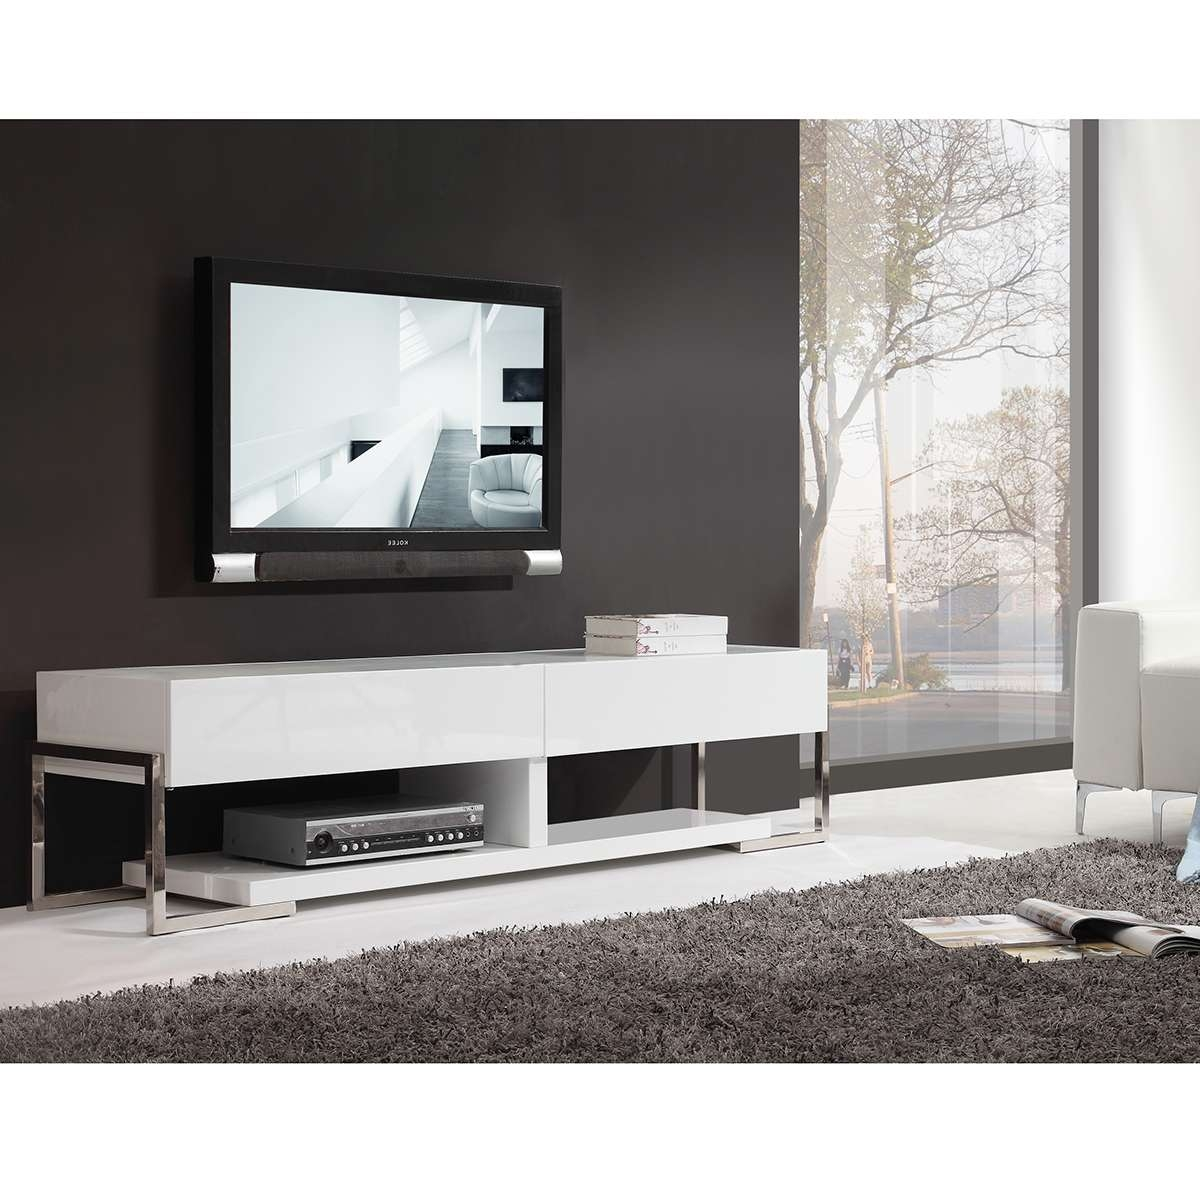 """B Modern Bm 650 Awht Agent 71"""" Contemporary Tv Stand In White With Regard To Modern White Lacquer Tv Stands (View 2 of 15)"""